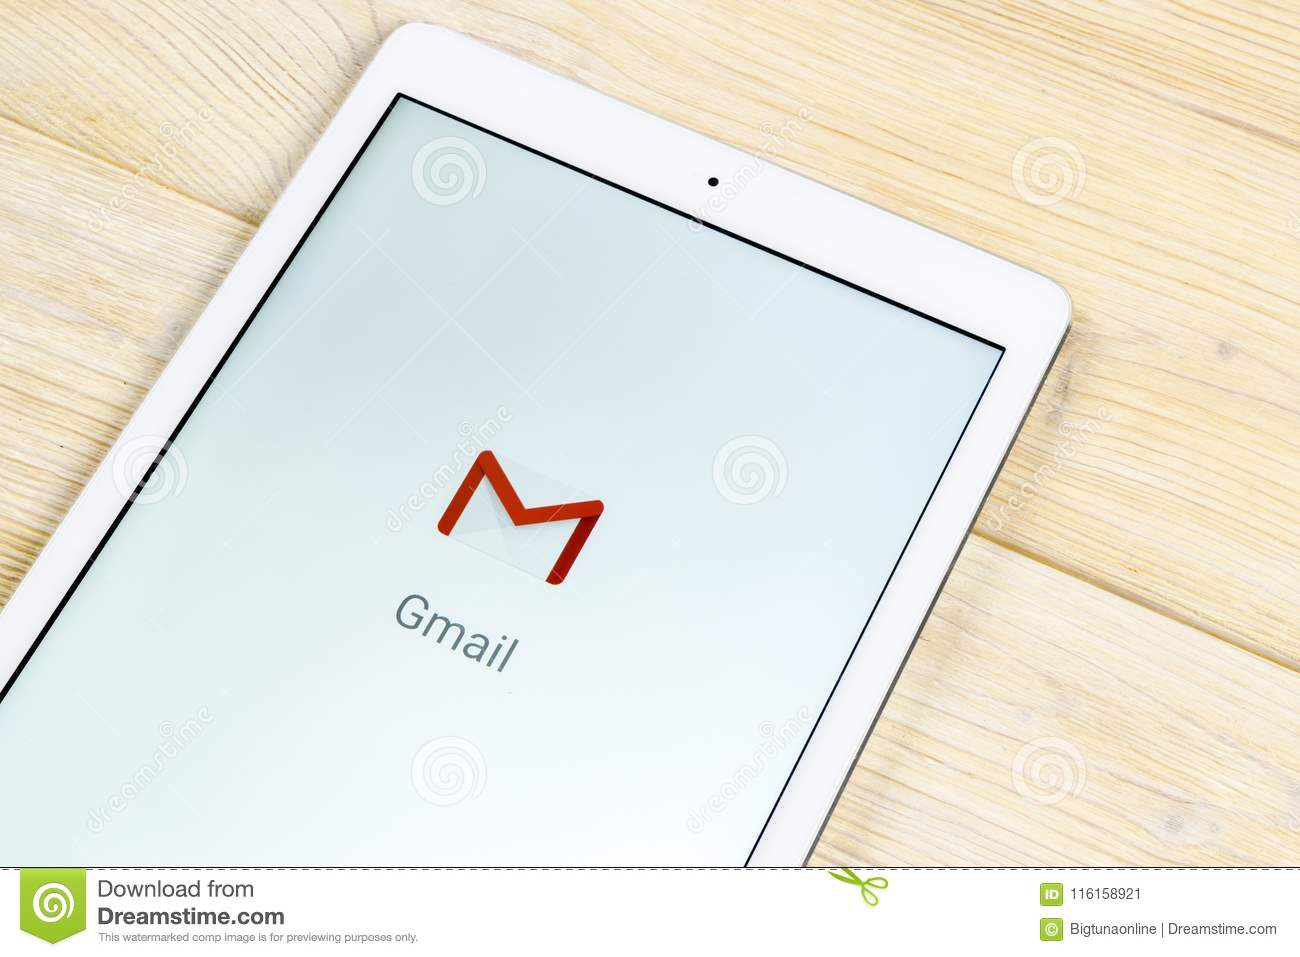 Google Gmail Application Icon On Apple IPad Smartphone Screen Close